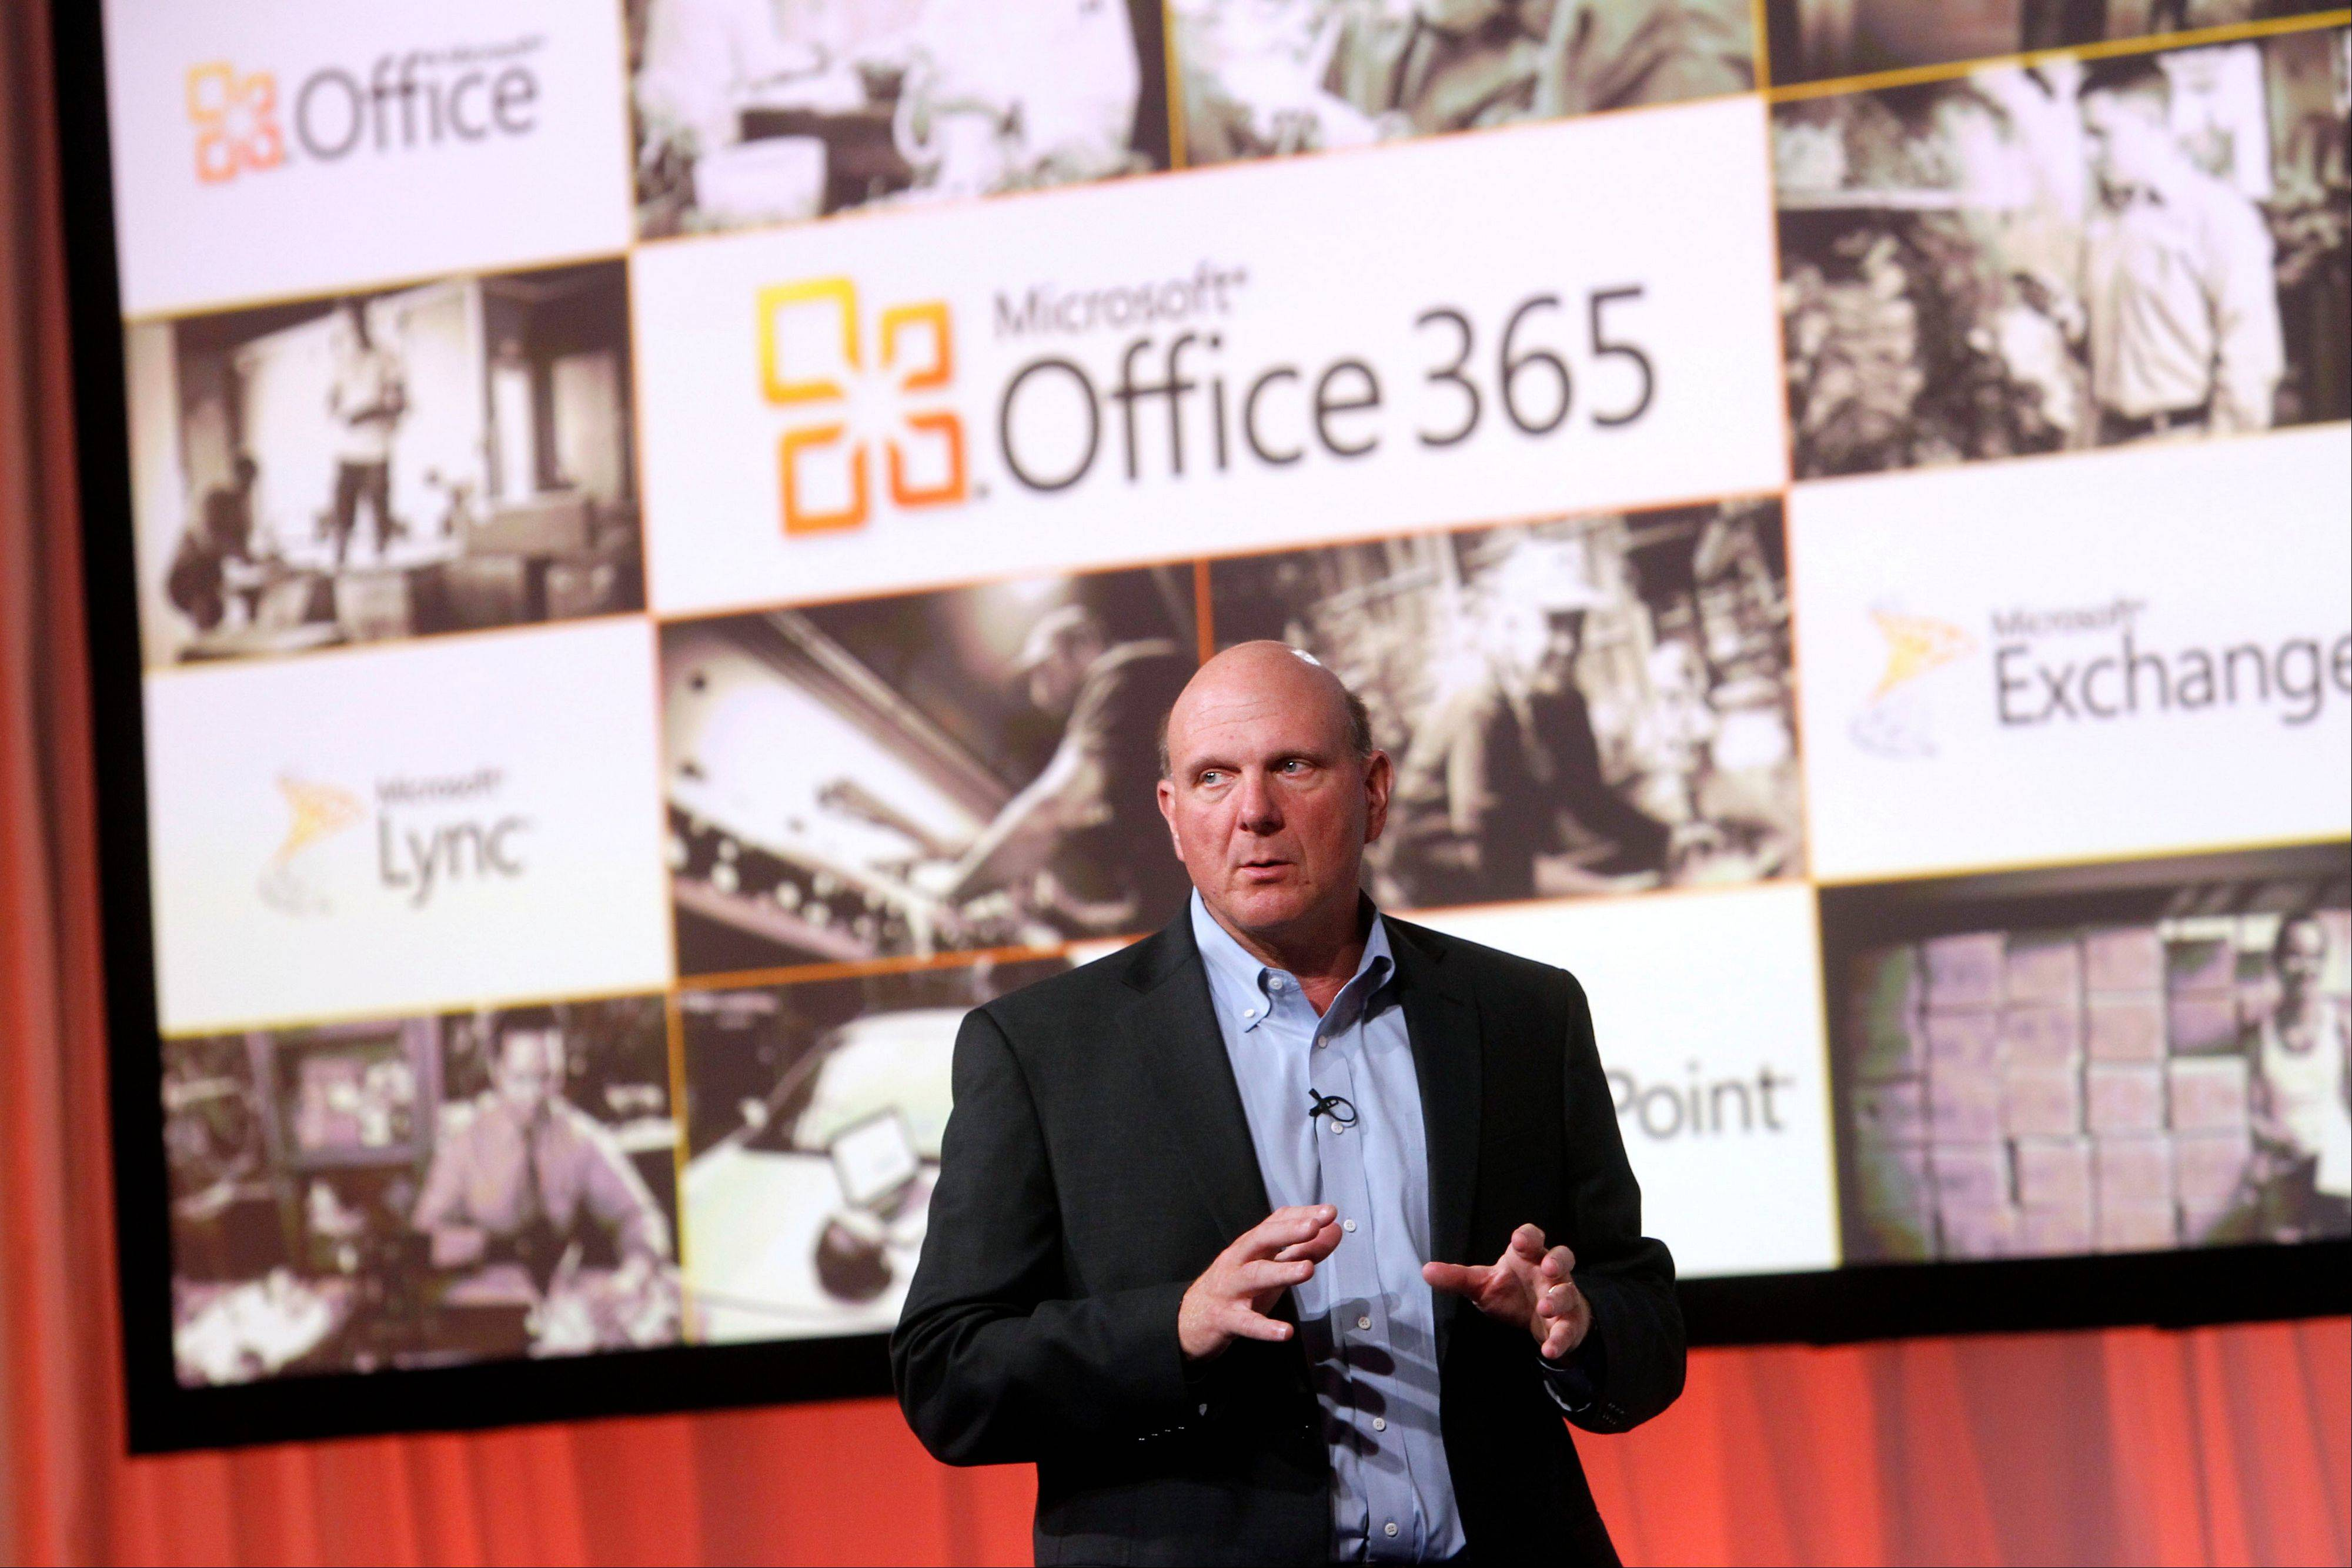 Microsoft, CEO Steve Ballmer announces the launch of Microsoft Office 365, which is designed to prevent businesses from migrating to Google.